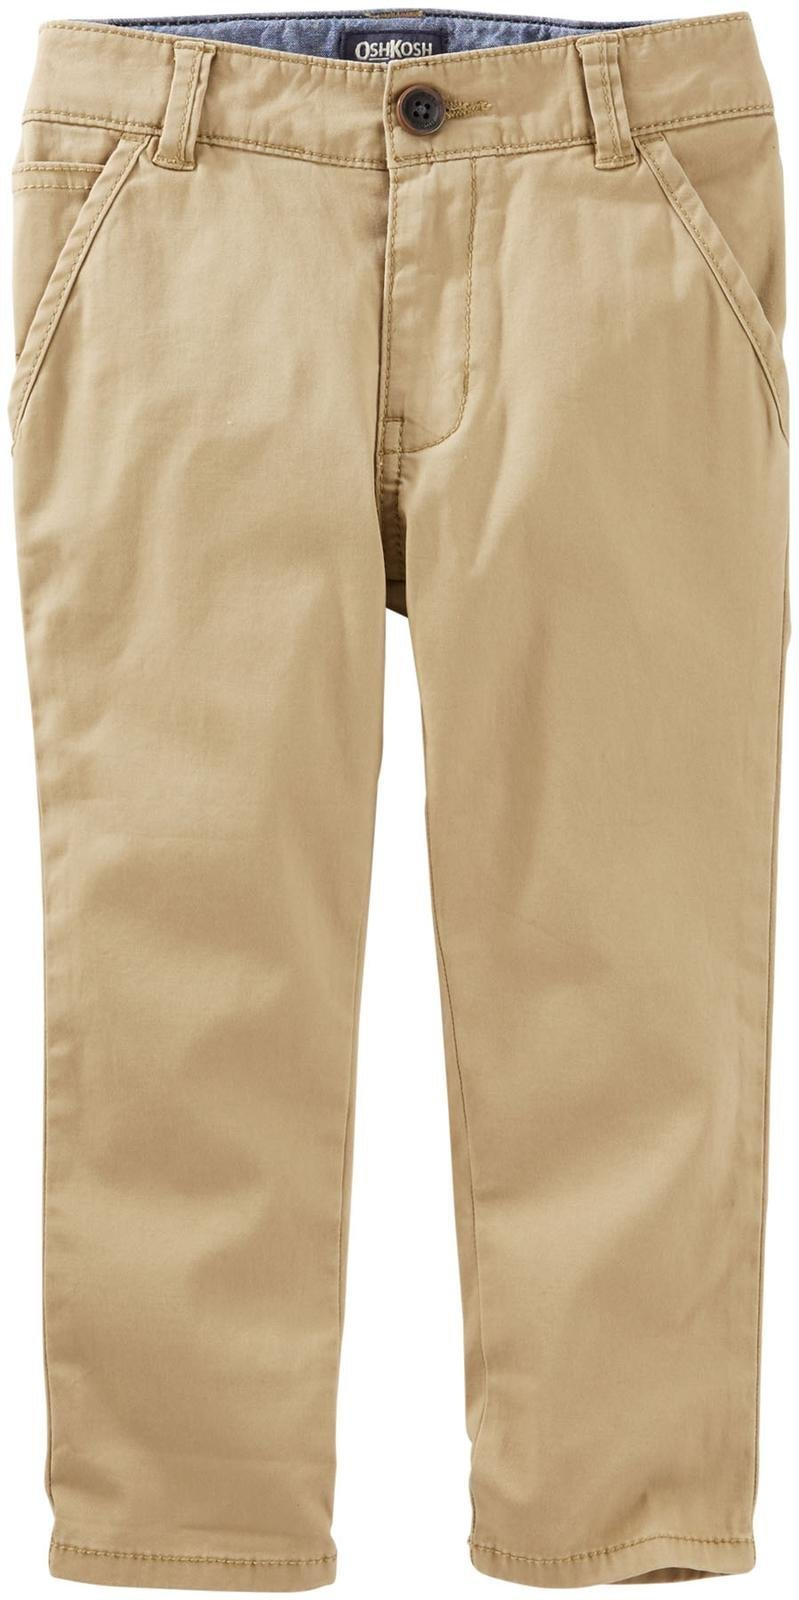 OshKosh B'Gosh Boys' Woven Pant 31813910, Brown, 4 Kids by OshKosh B'Gosh (Image #1)